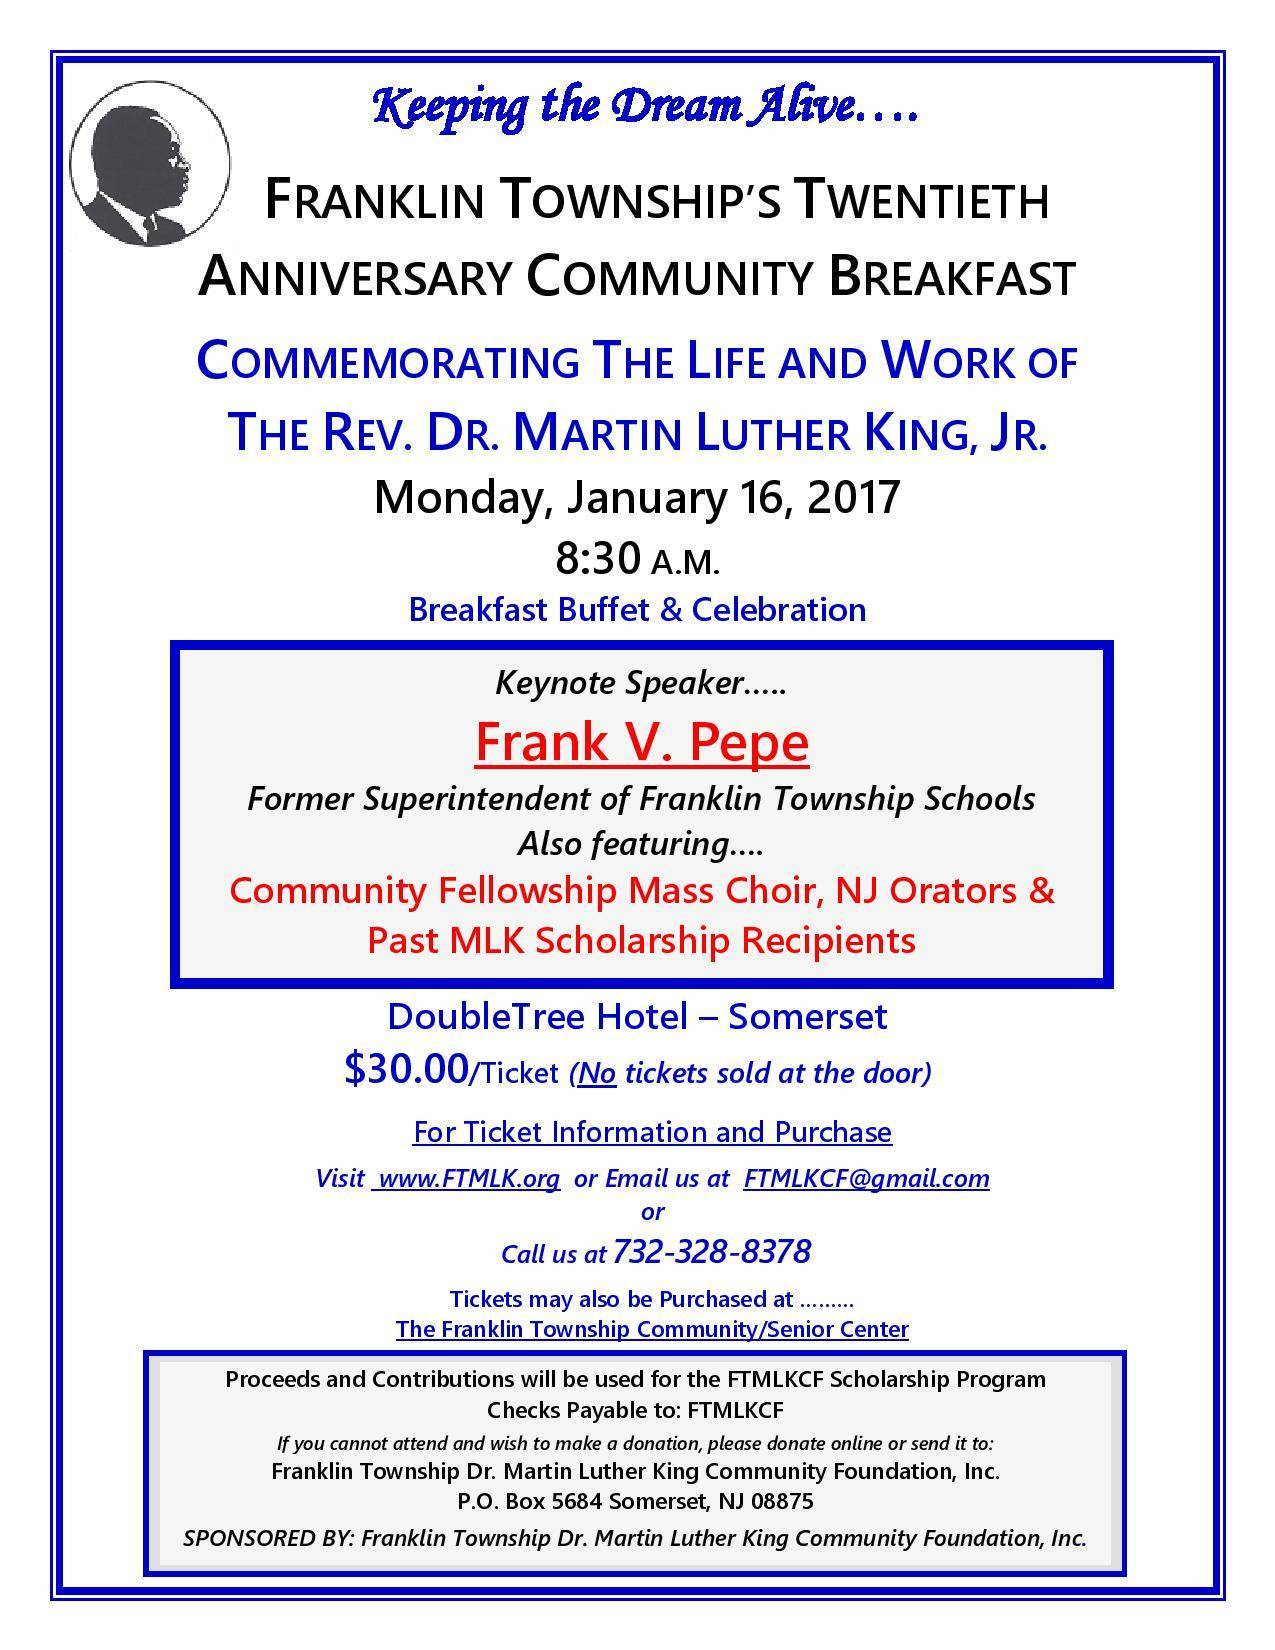 UPDATE: Dr. Martin Luther King Jr. Community Breakfast in Franklin Township